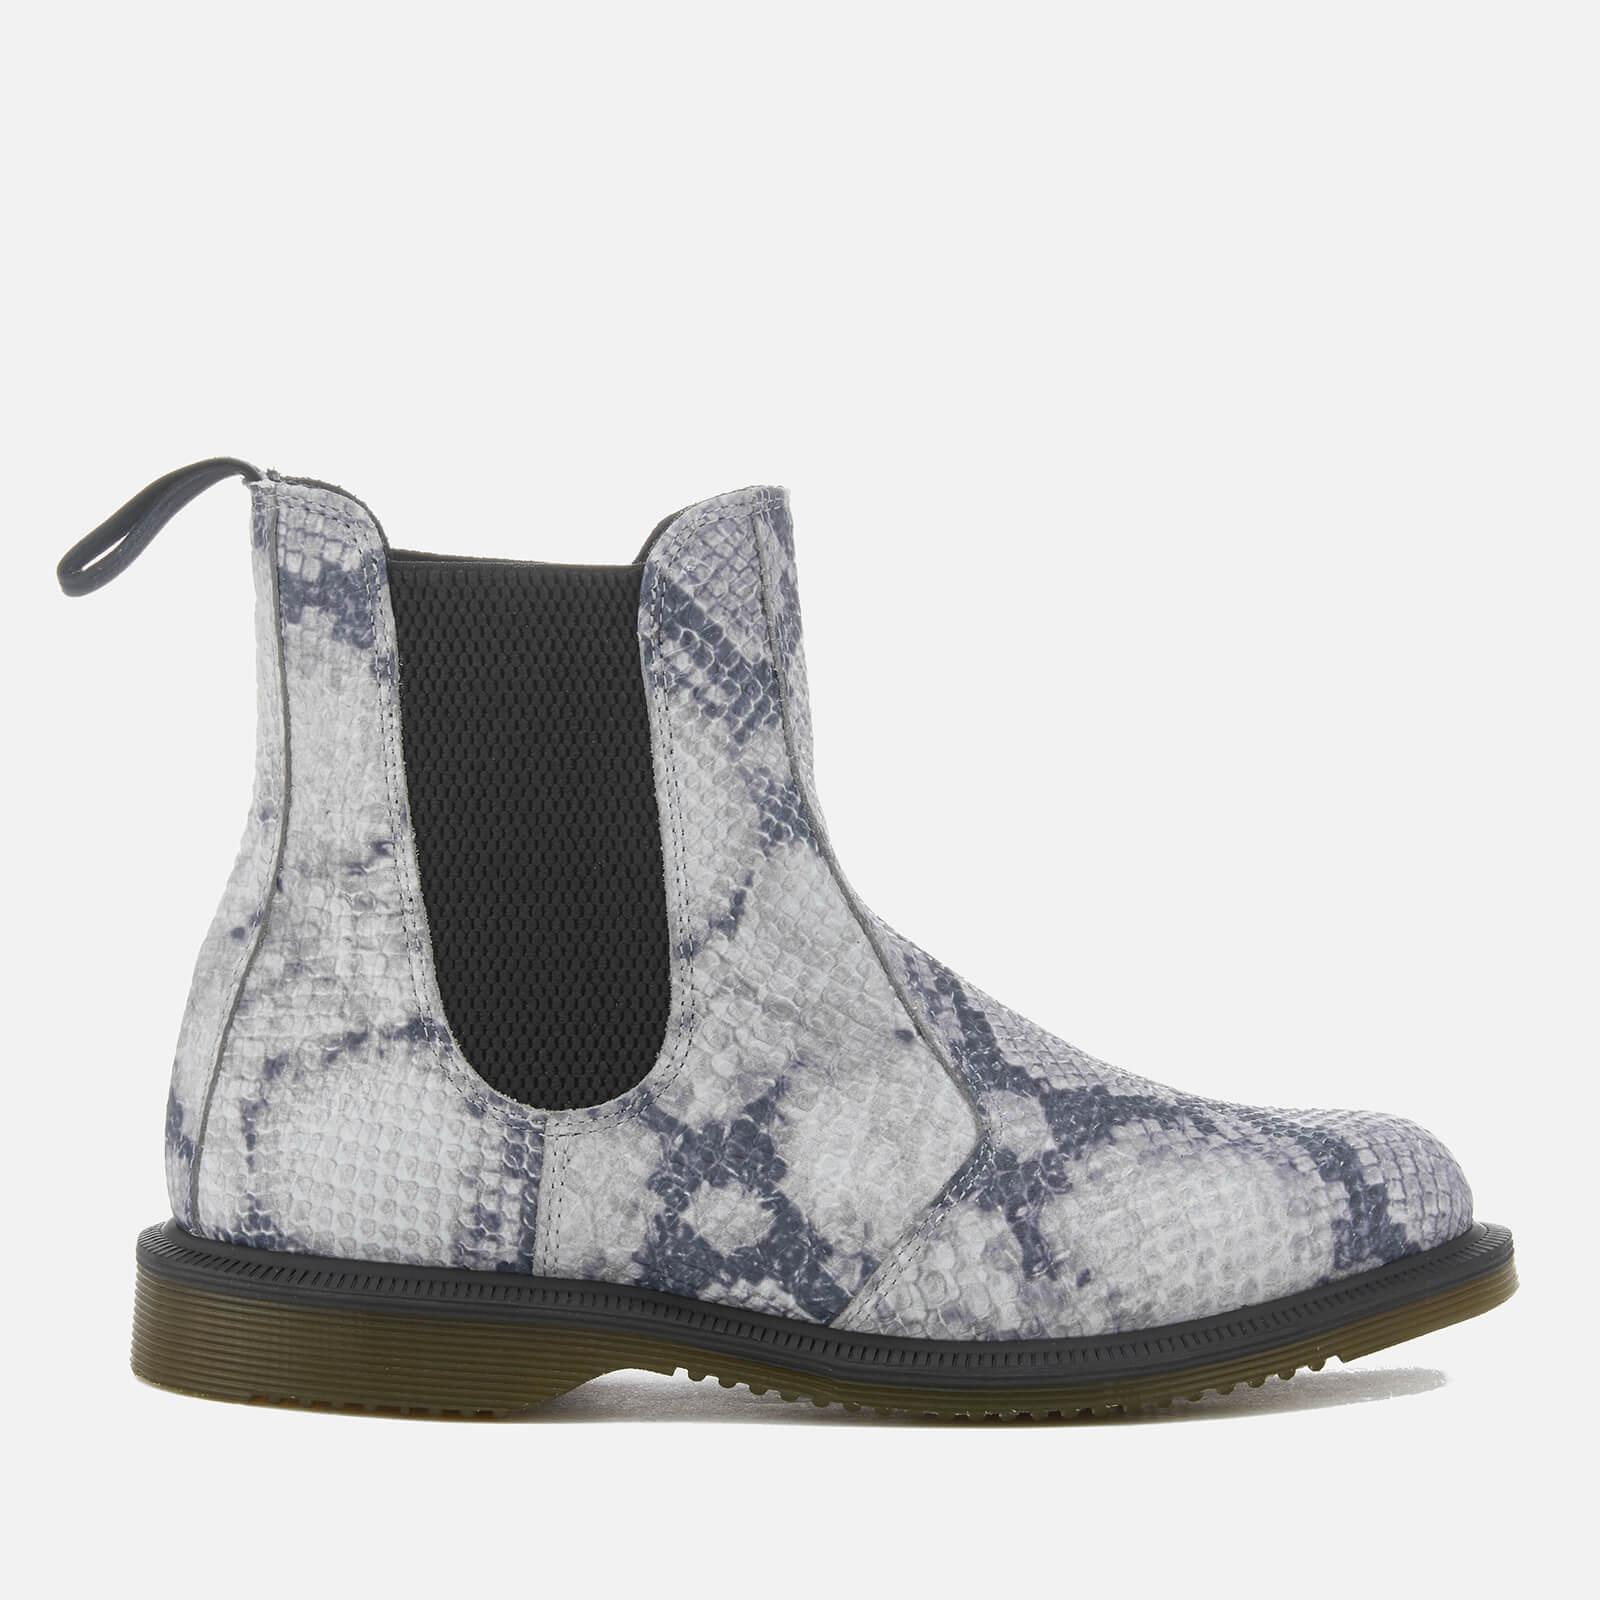 low price fee shipping Dr Martens Kensington Chelsea Boots in Faux Snake Print buy cheap supply WOBMshQMZ